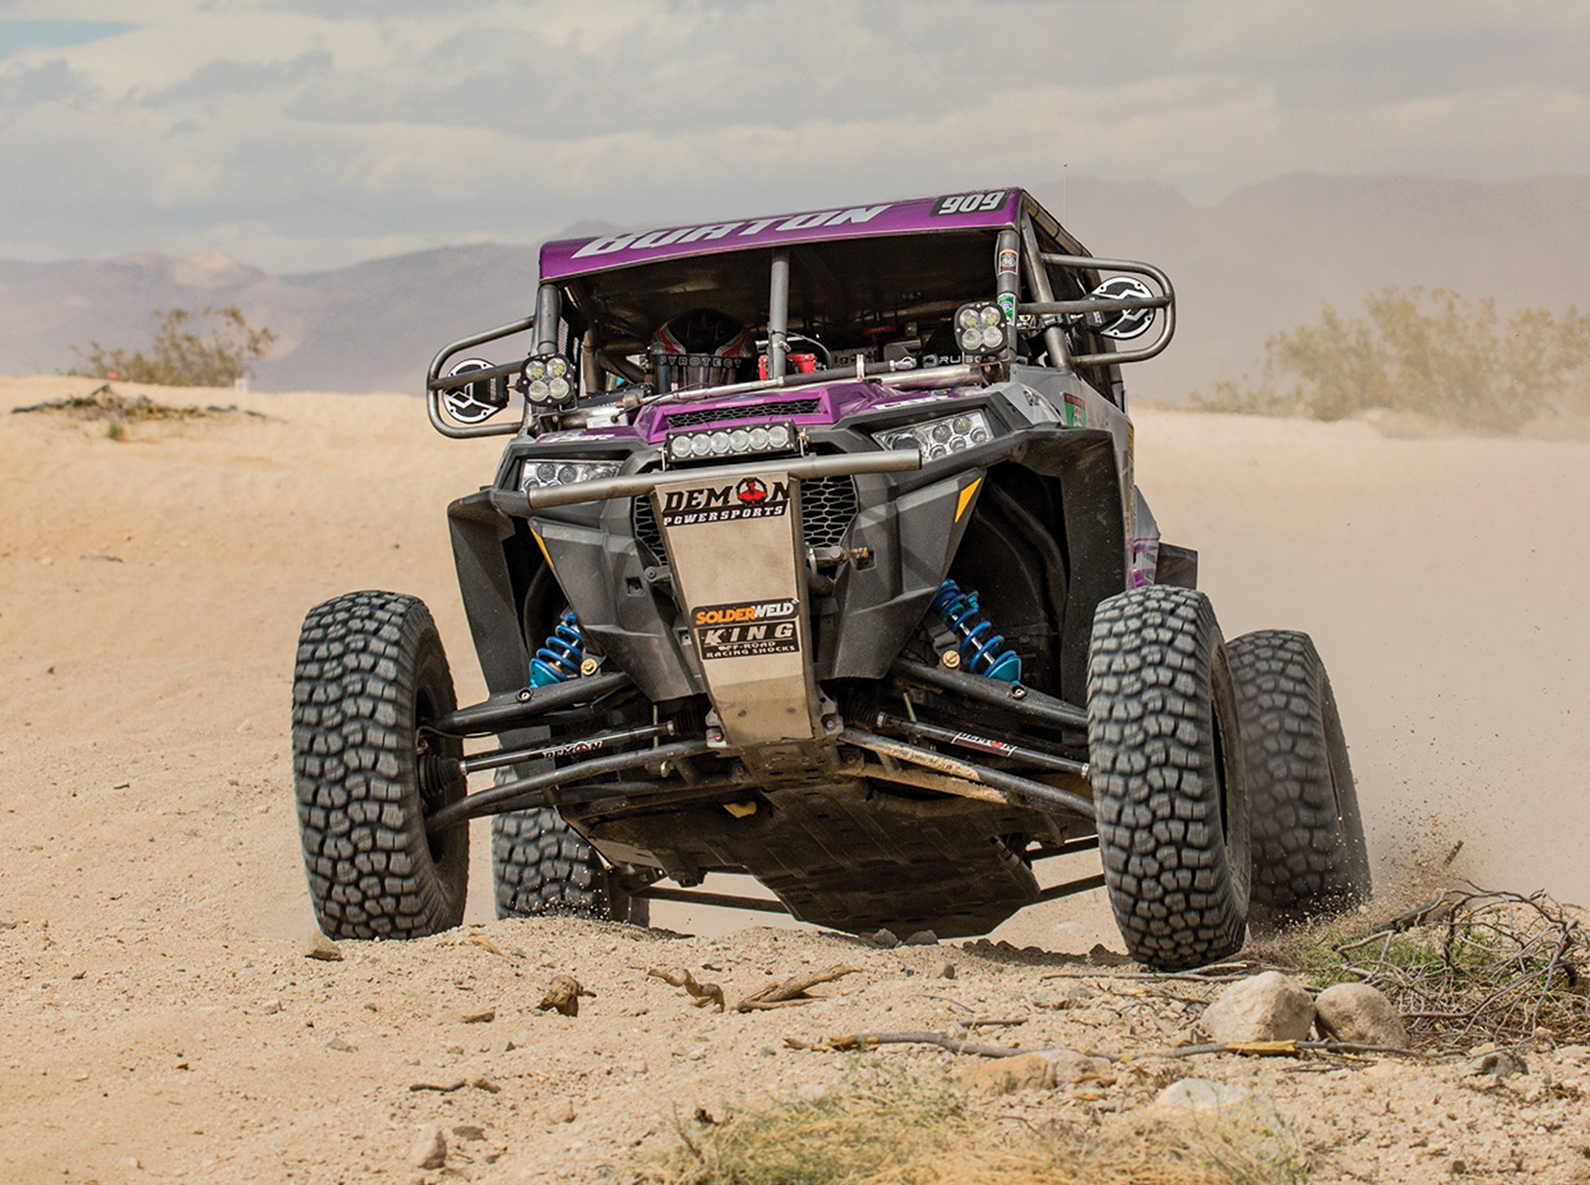 Demon X-Treme ATV UTV Axles - Polaris RZR 1000 Long Travel Axles - Lone Star Suspension- Demon Powersports